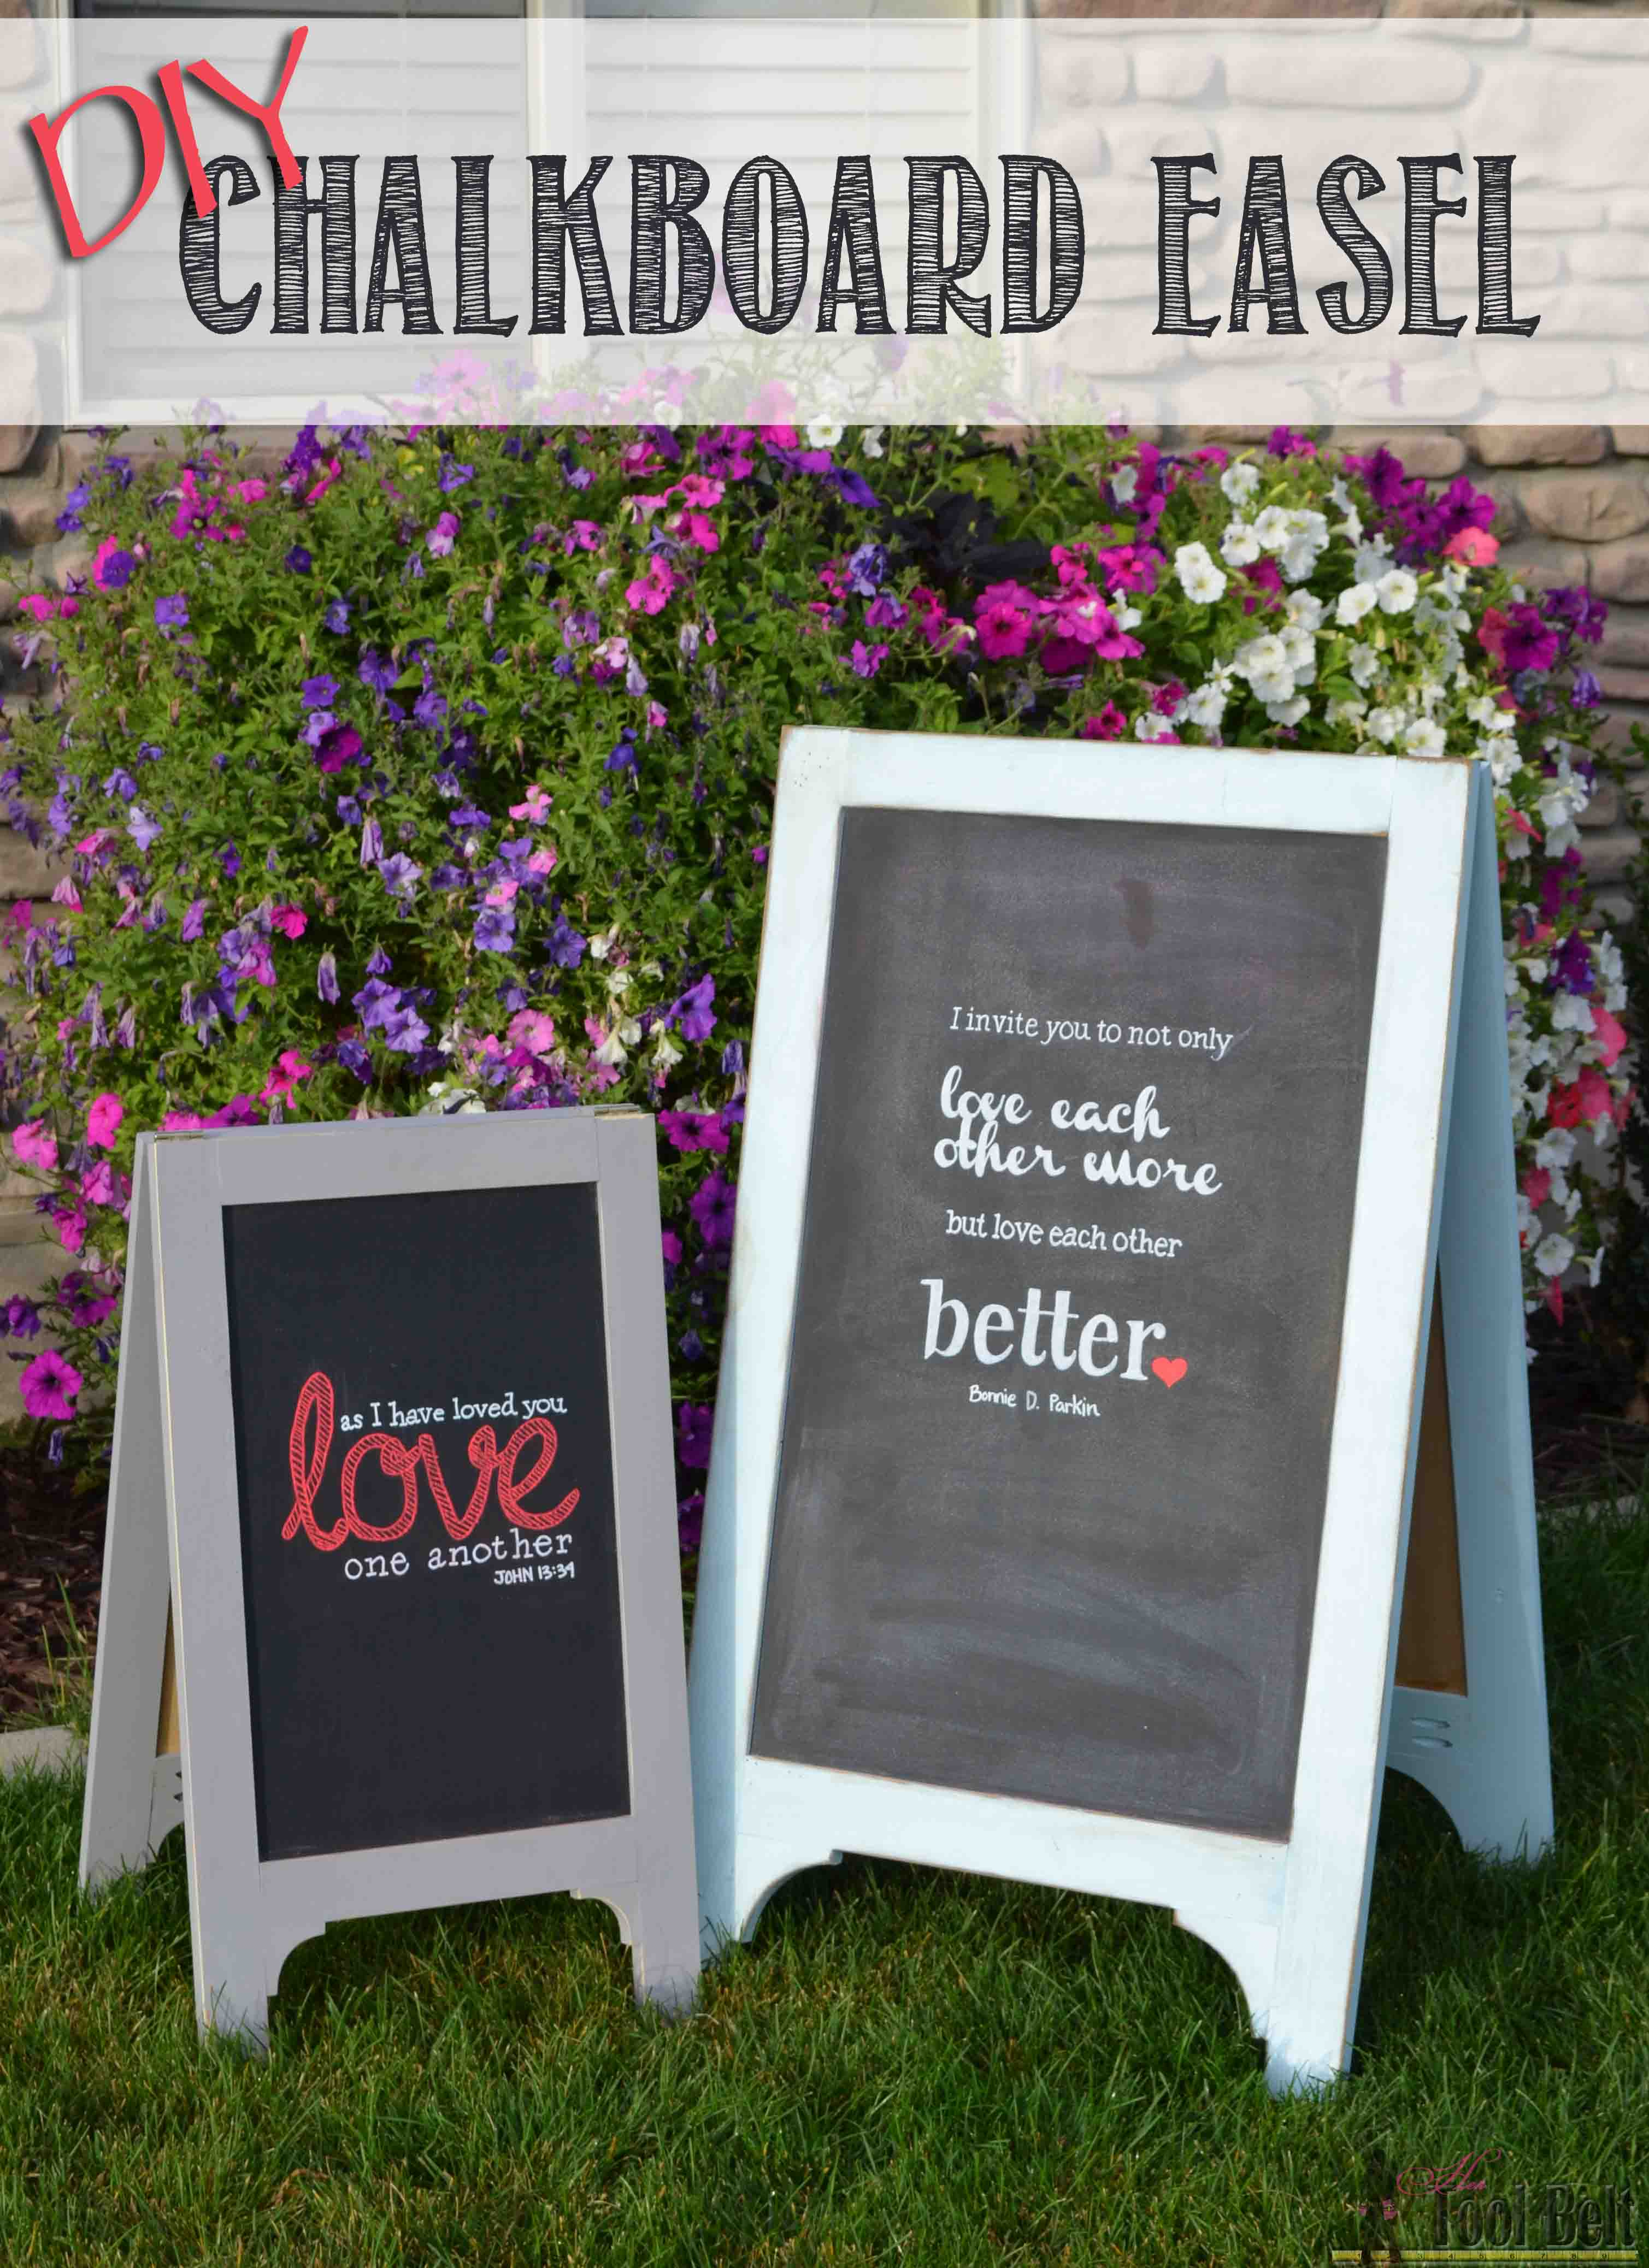 Do It Yourself Home Design: A-frame Chalkboard Easel